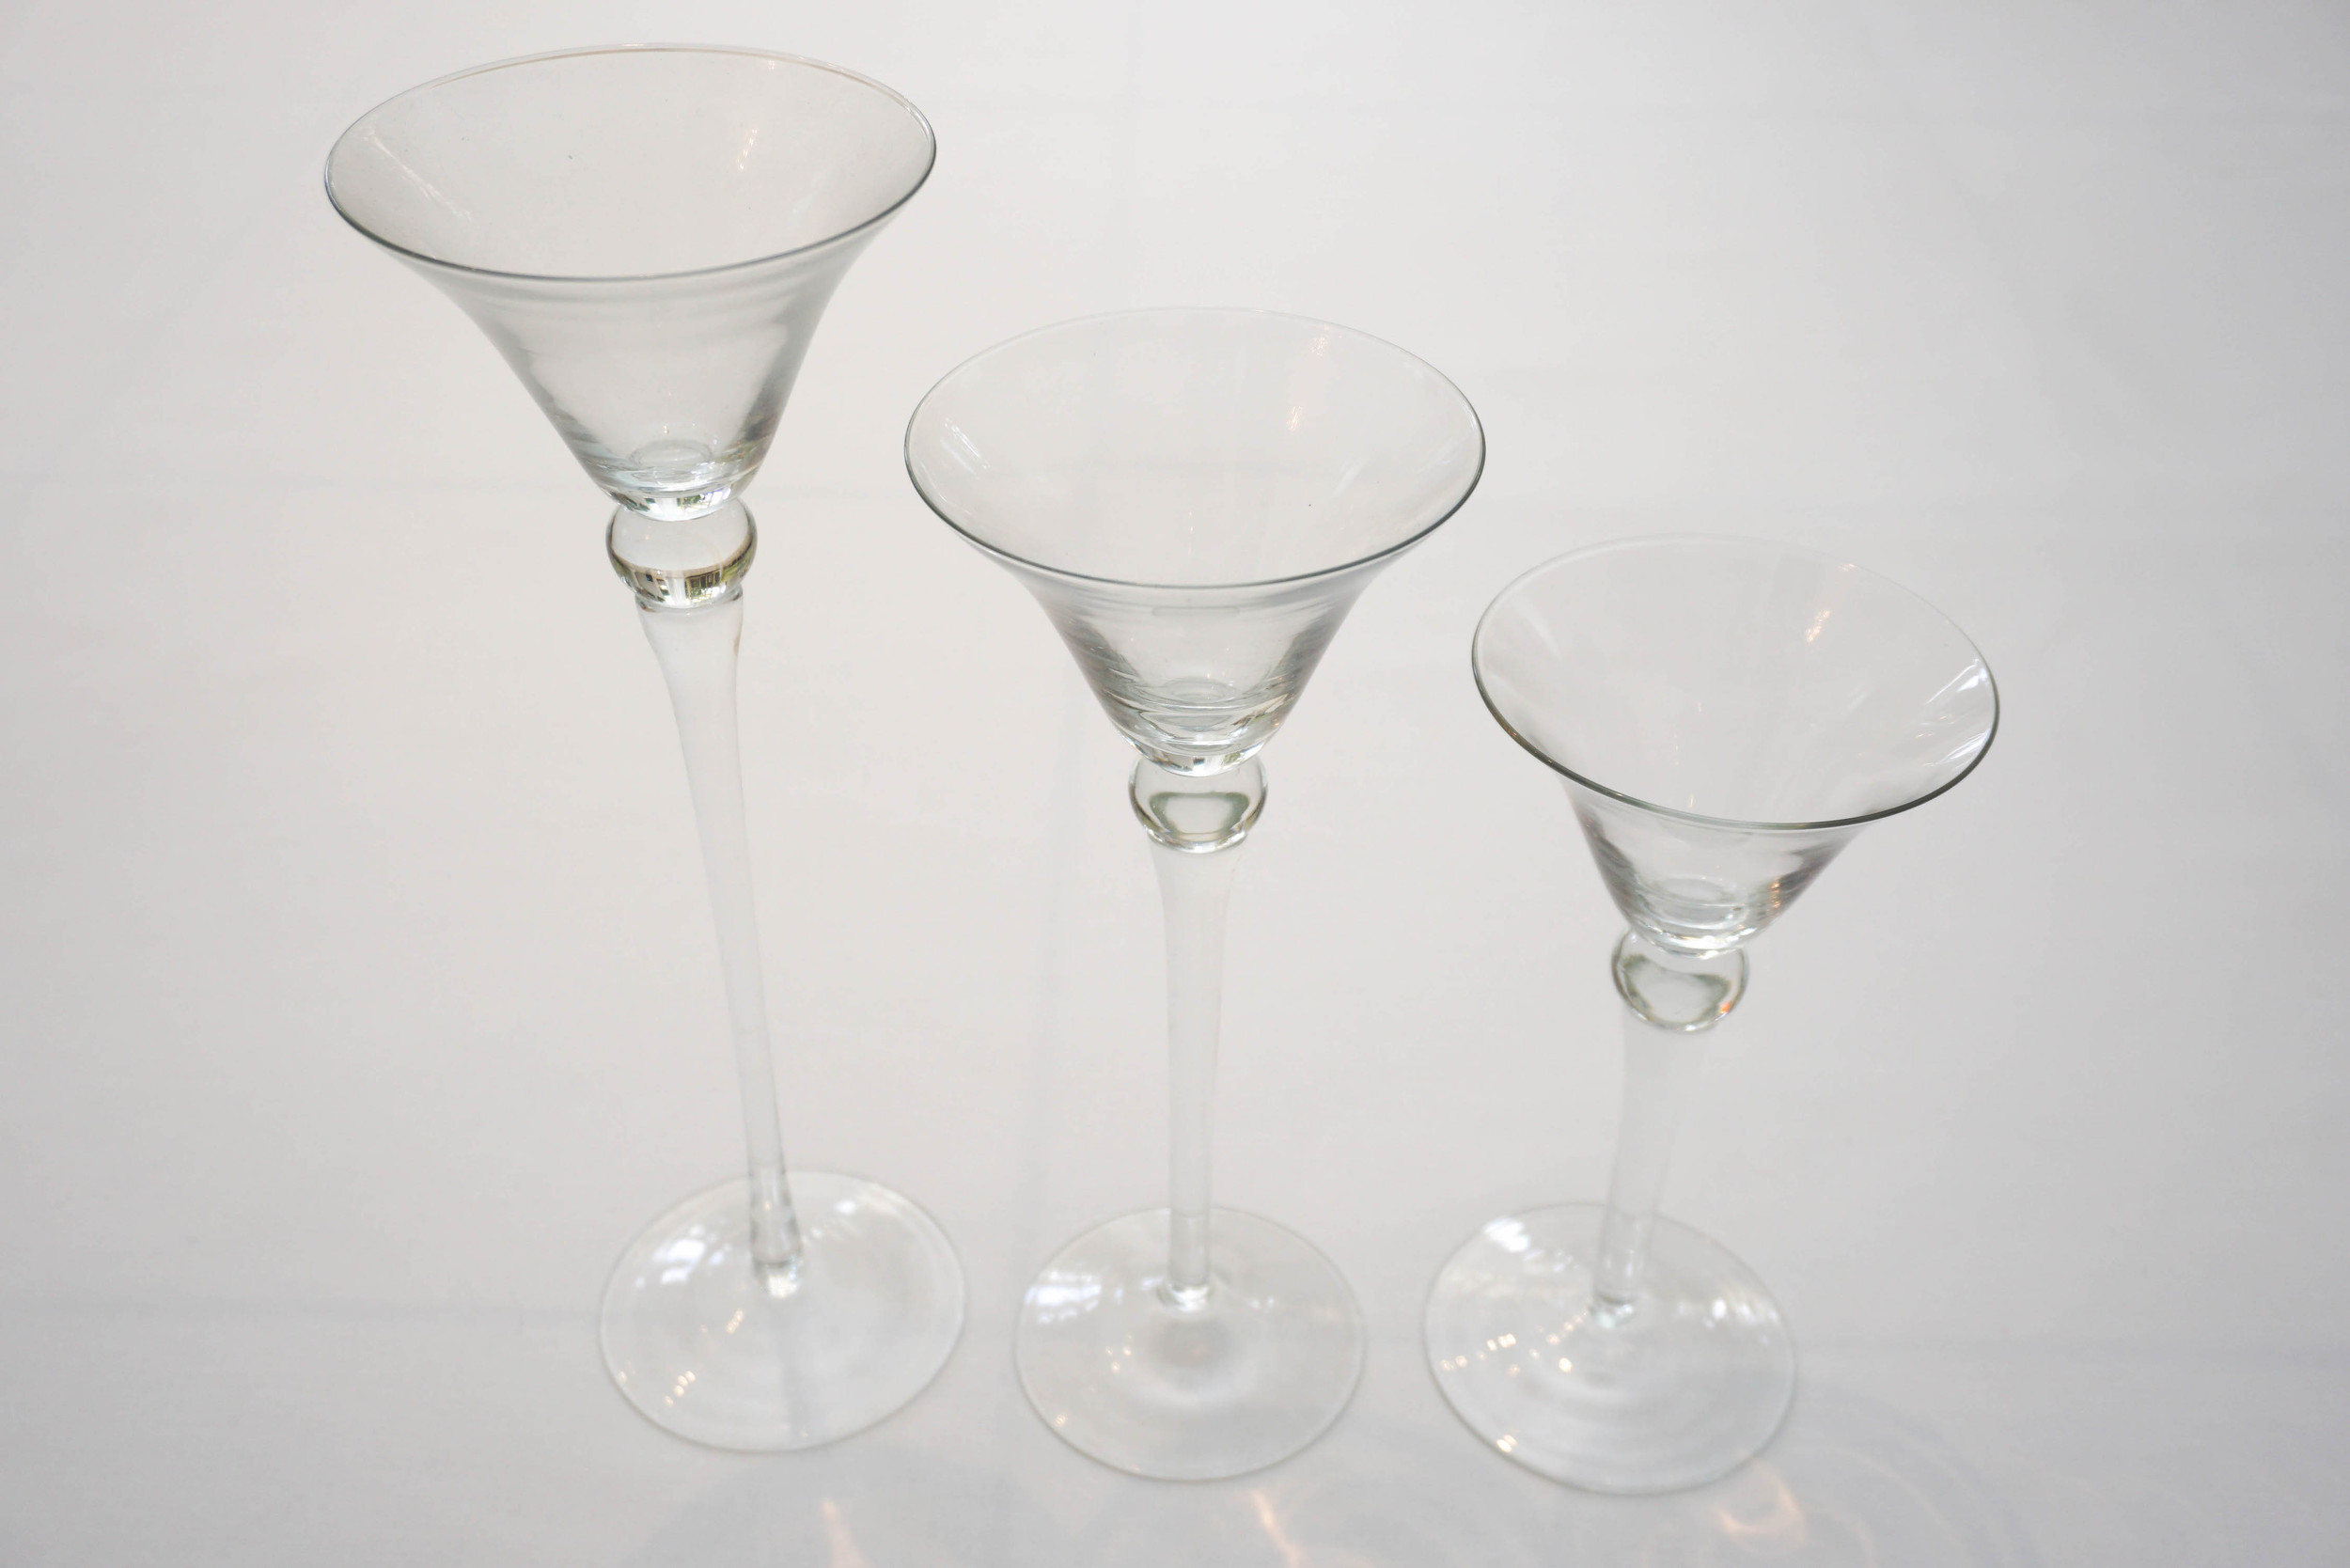 Centrepieces hire, glassware, vases and candle holders for hire